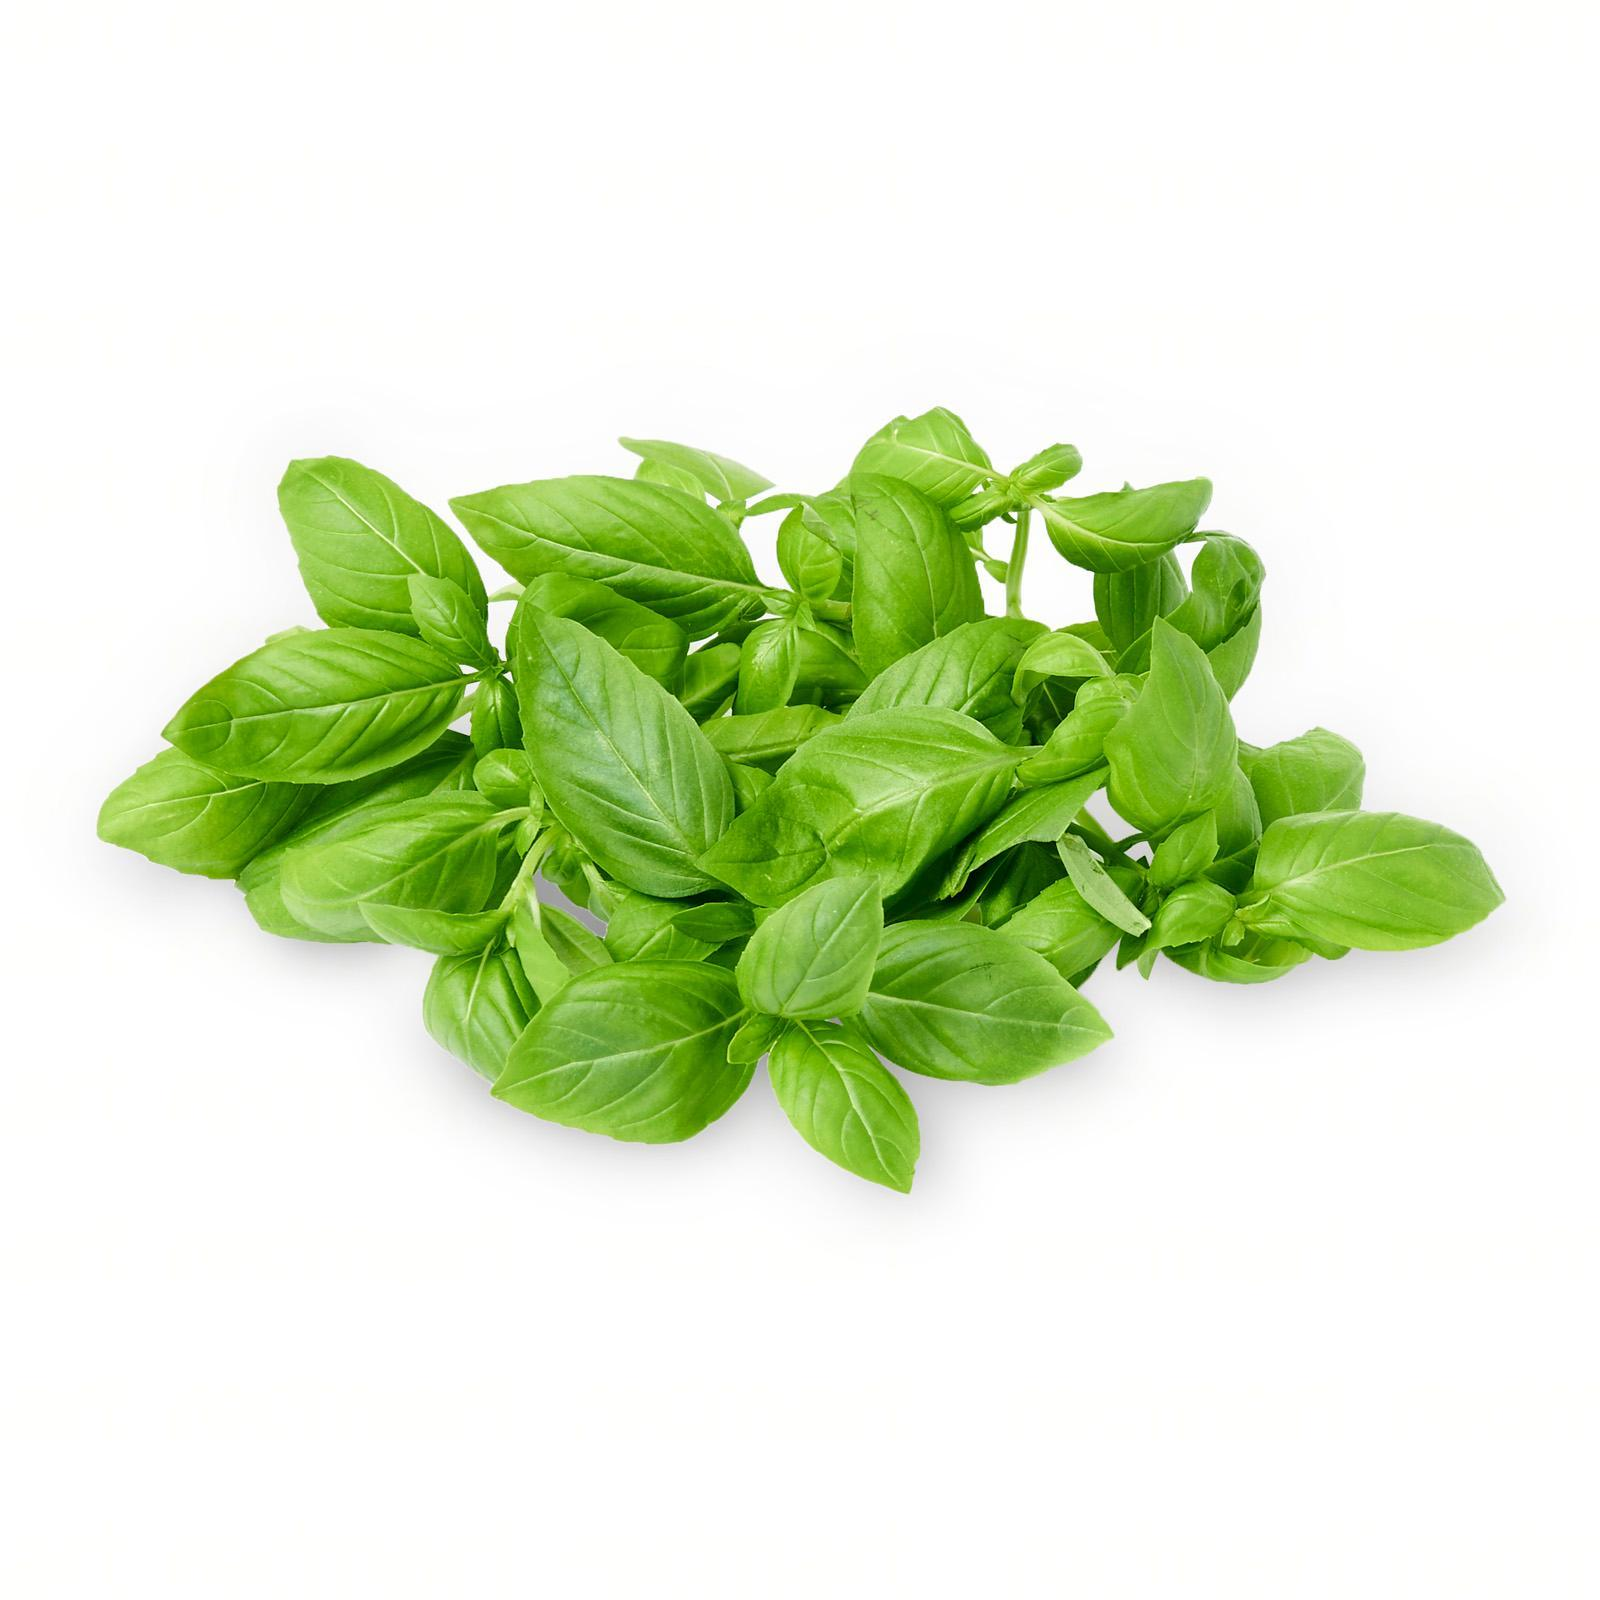 The Little Red Farm Sweet Italian Basil